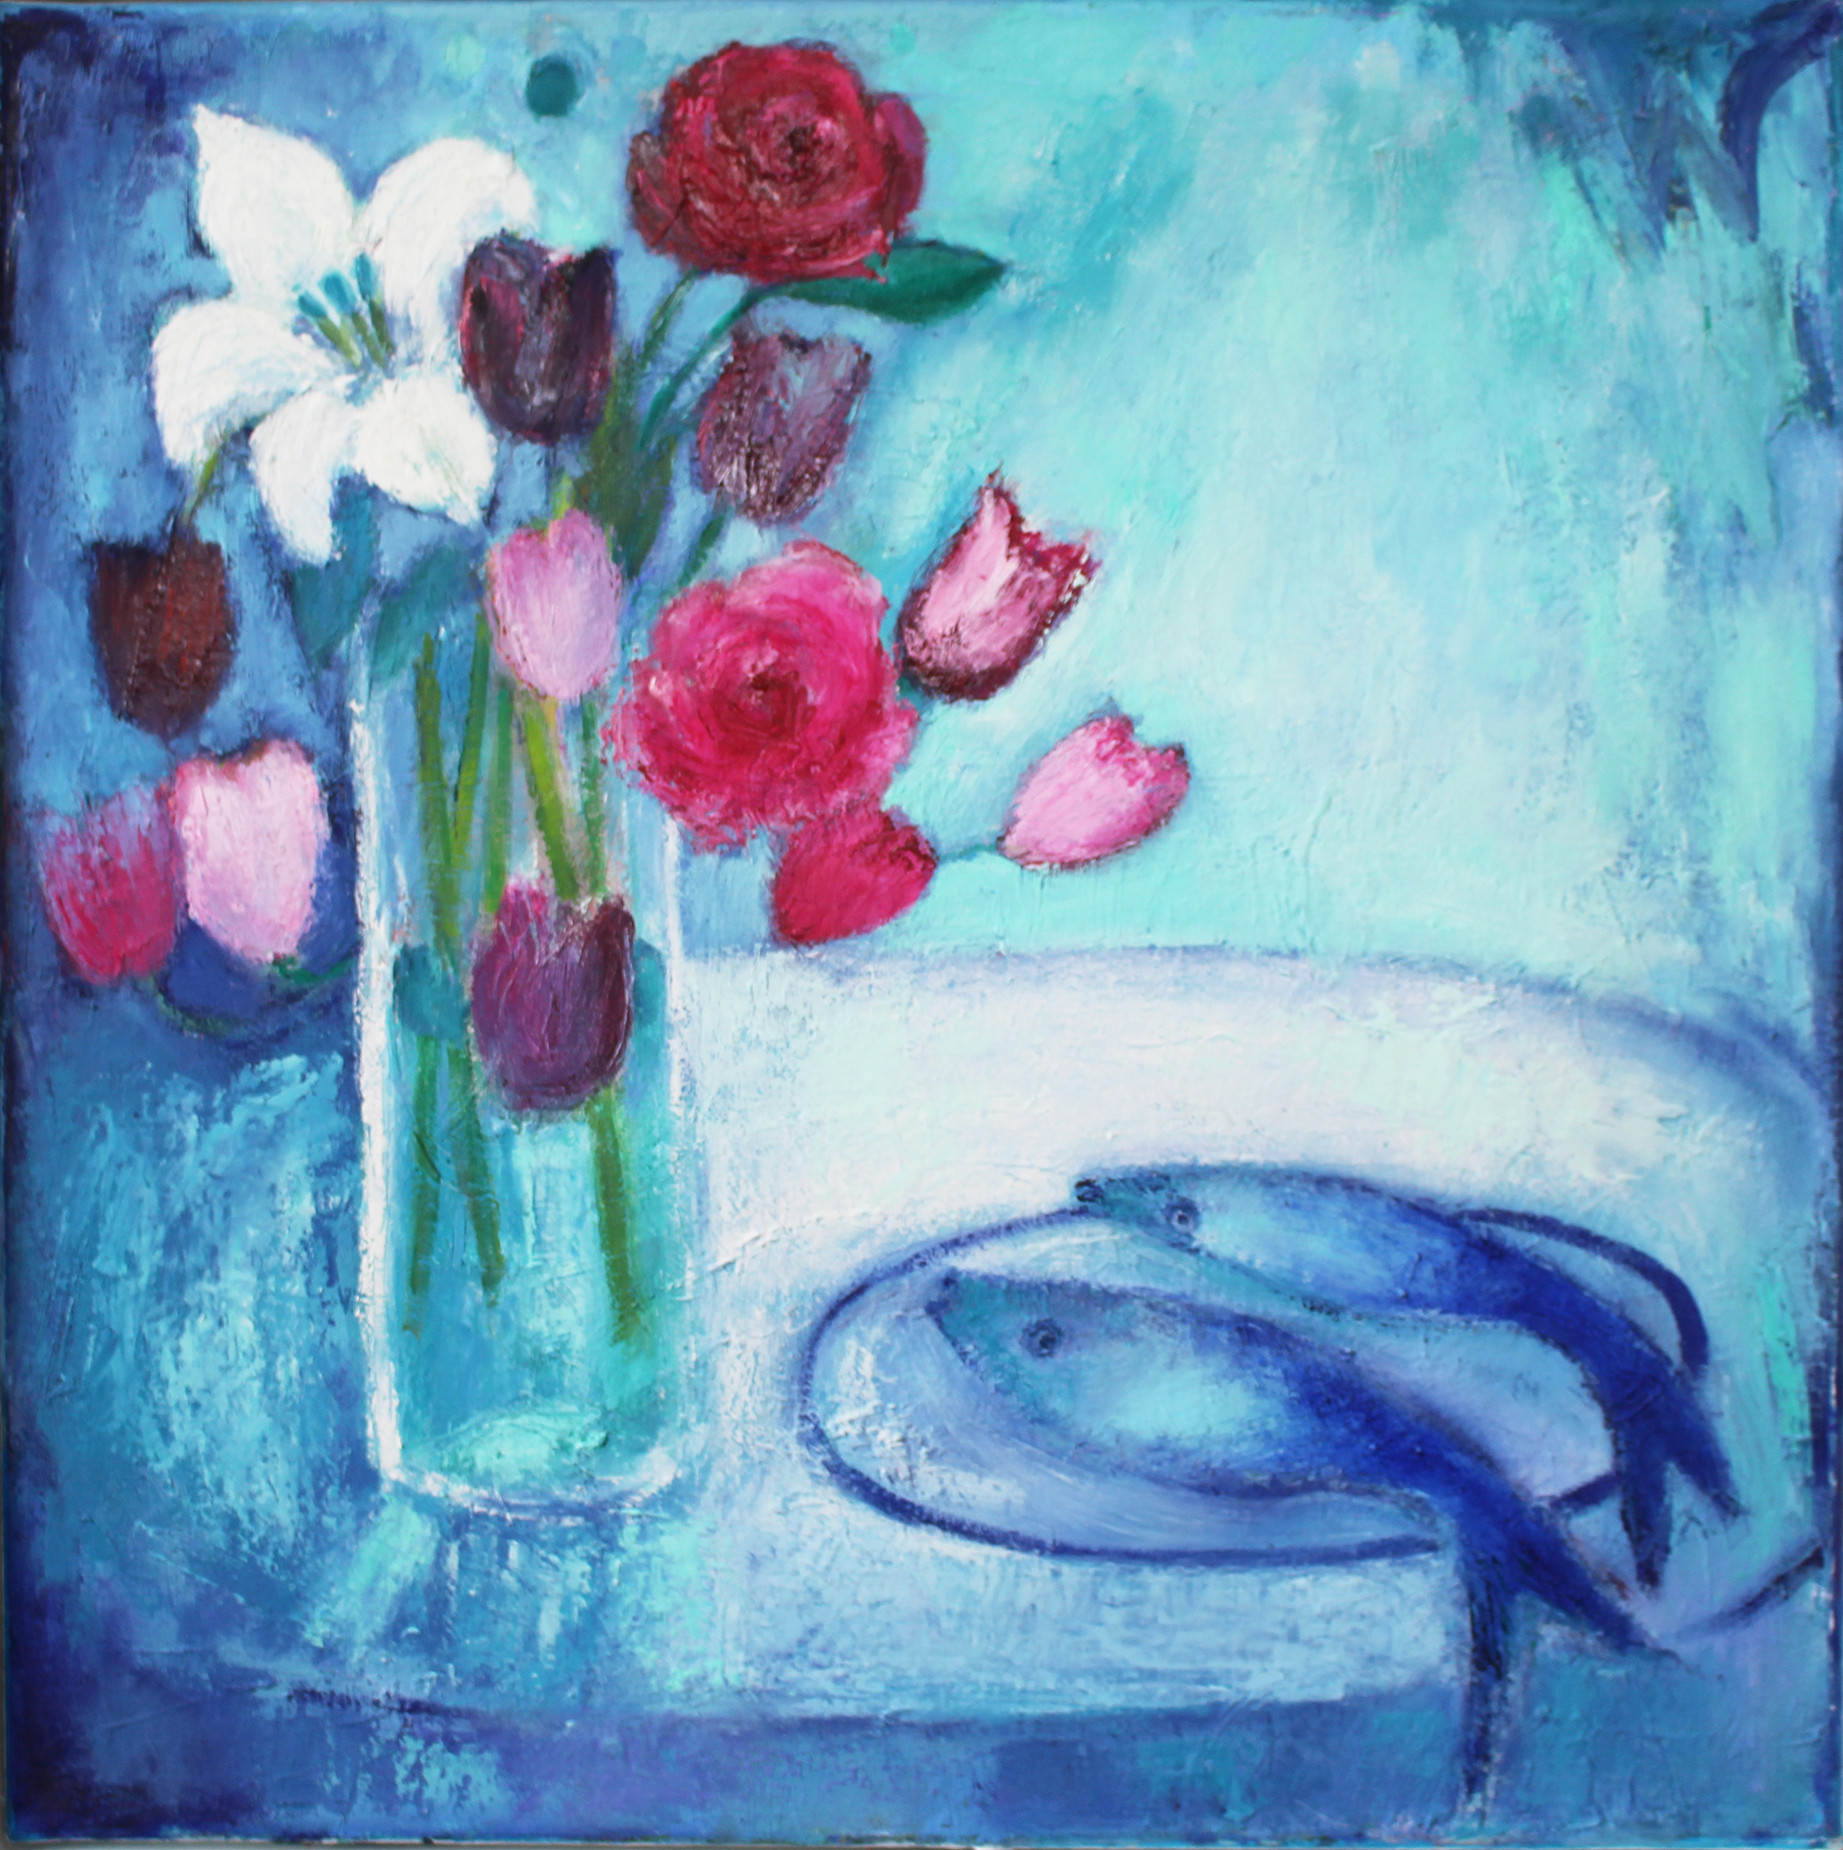 Roses, Tulips and Fishes - oil on canvas 60 x 60 cm framed £295